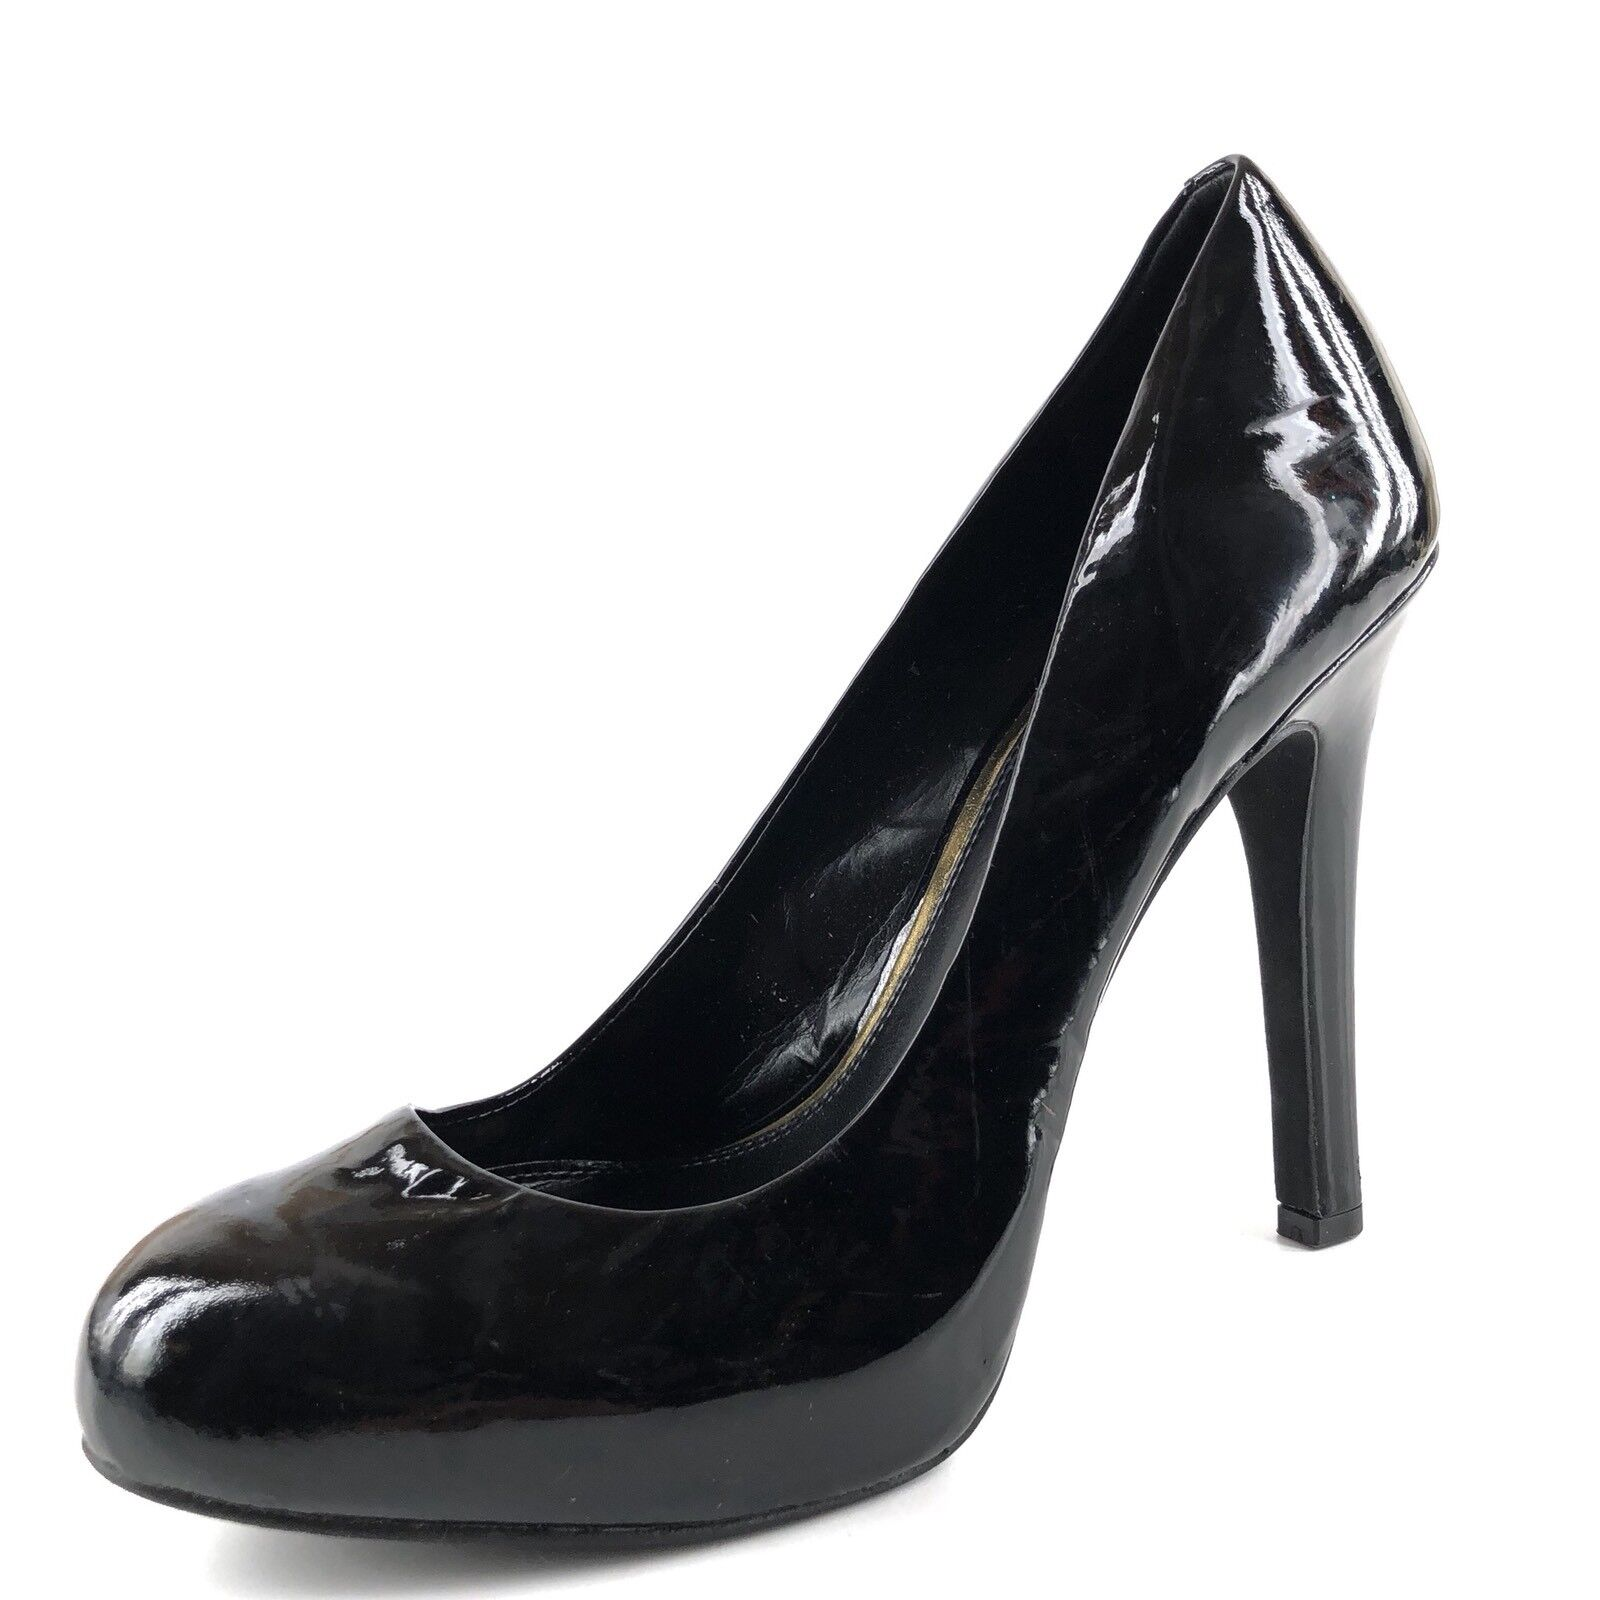 Jessica Simpson Abriana Black Leather Platform Casual Pumps Women's Size 9 M